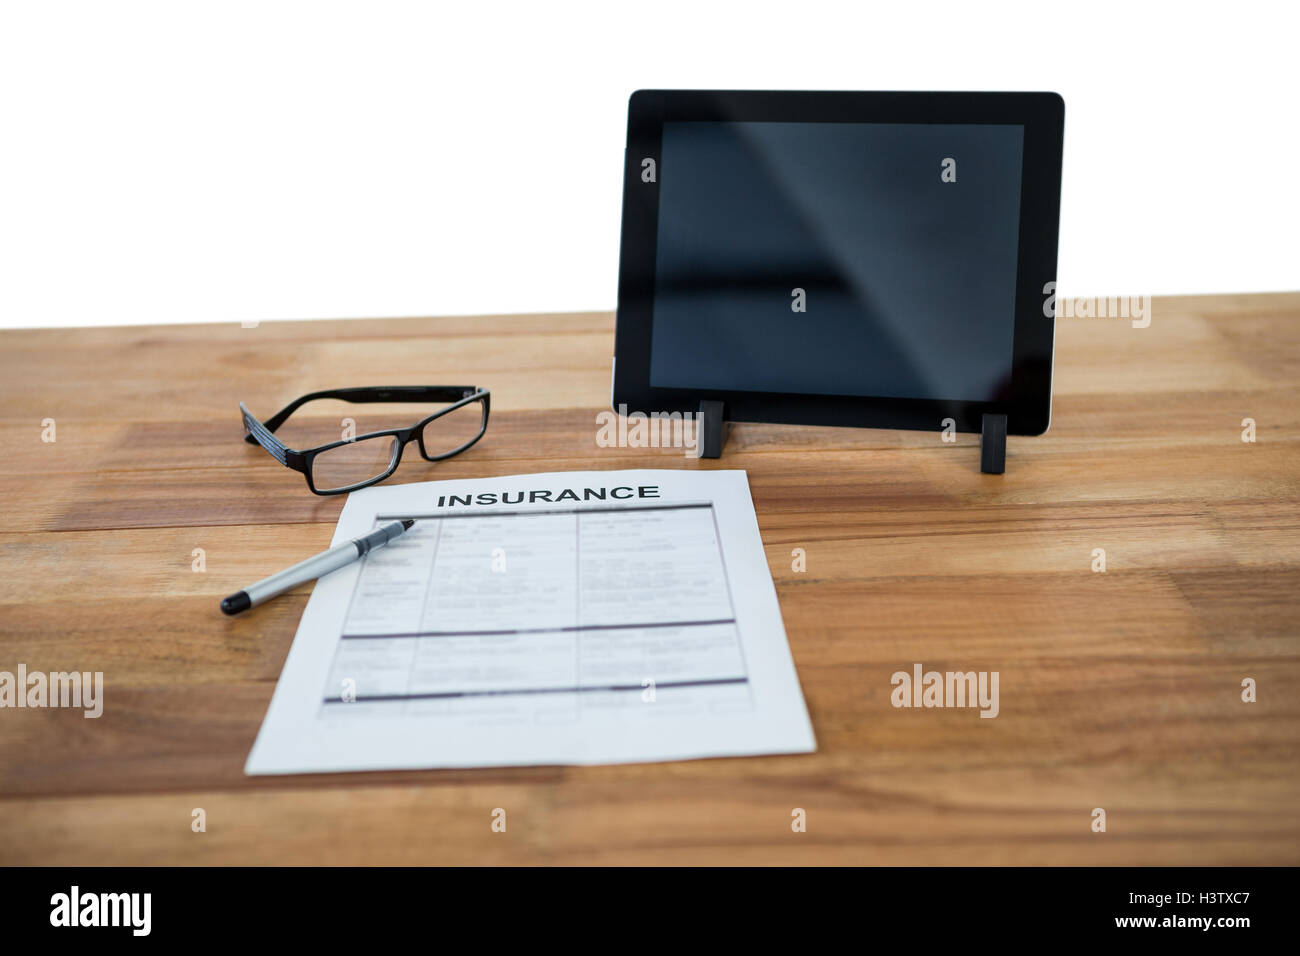 Digital tablet, insurance form, spectacle and pen on desk - Stock Image